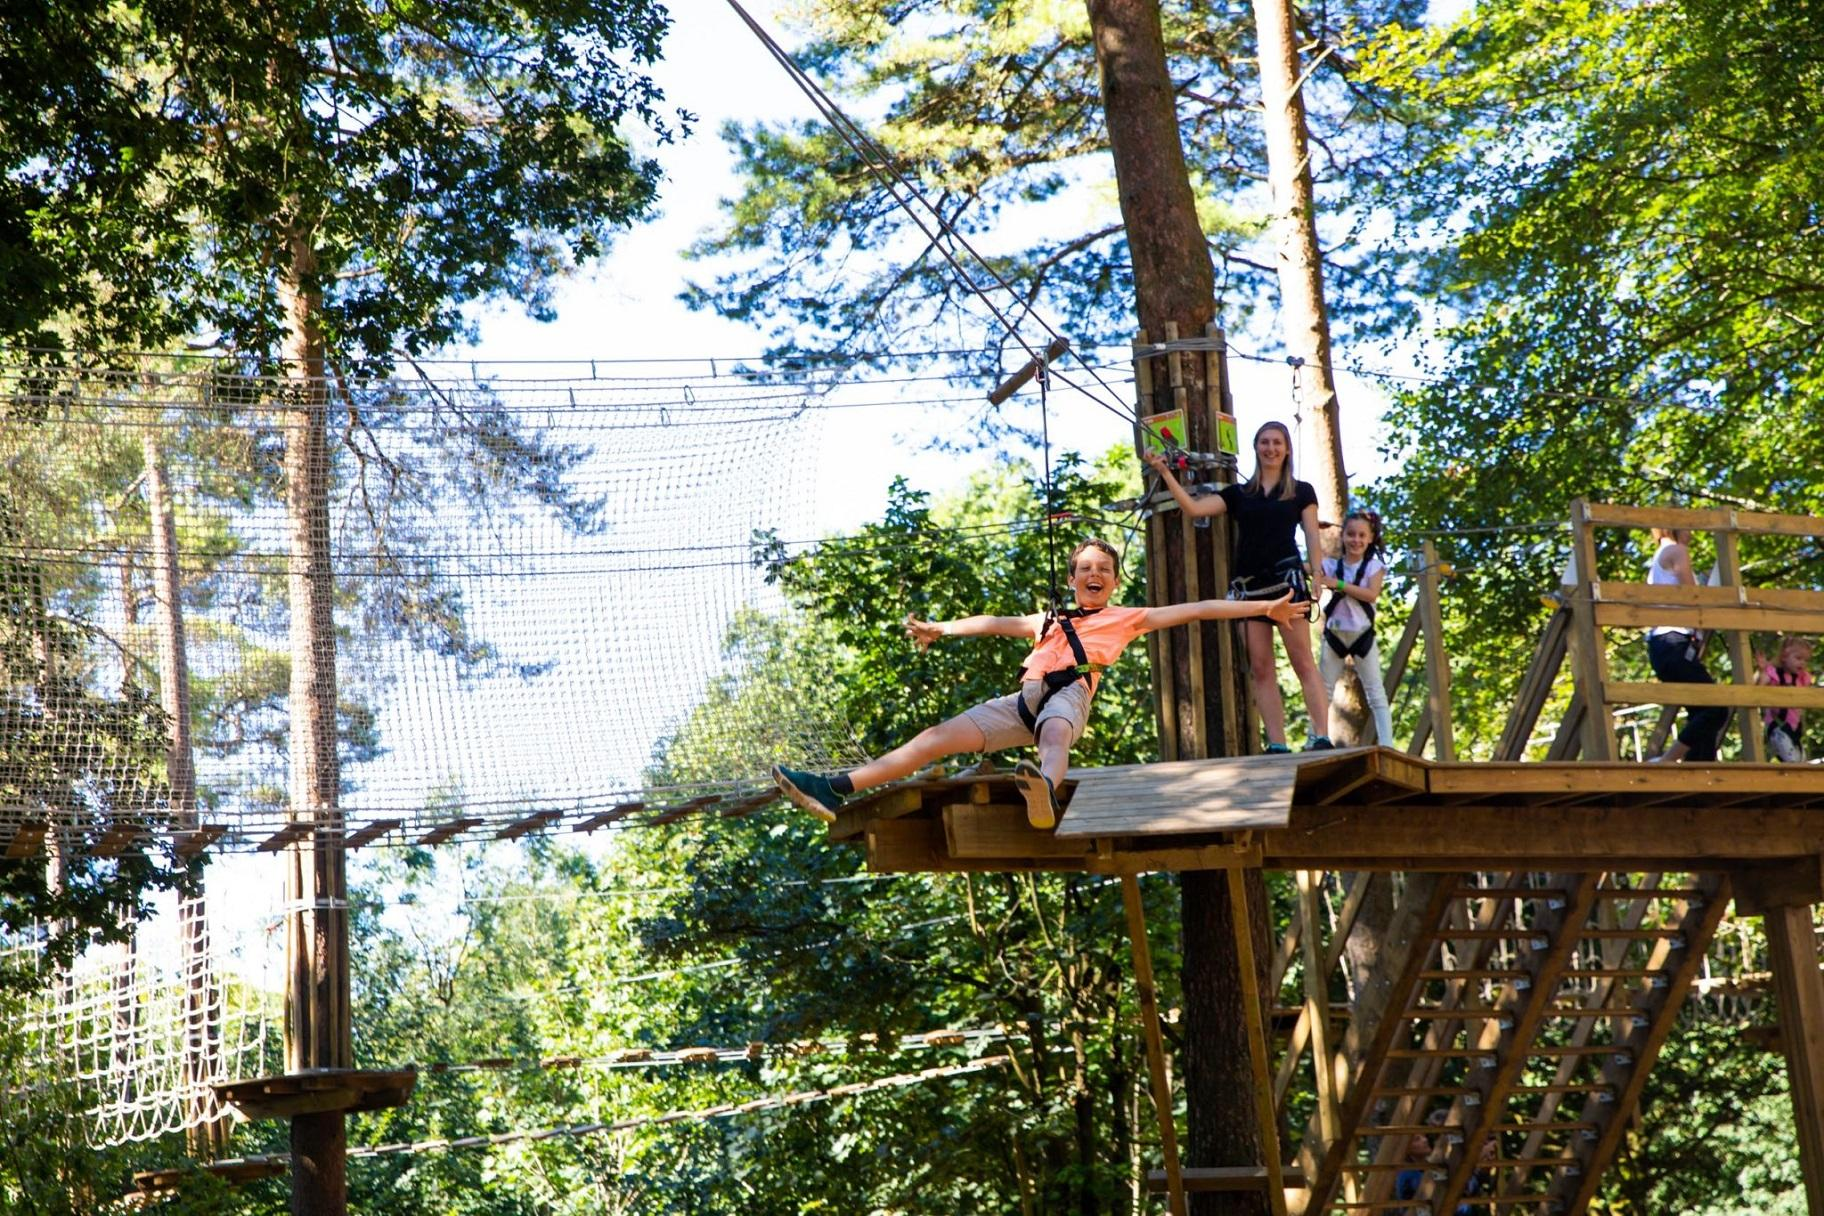 Outdoor adventure company Go Ape opened a zipline course at Bemis Woods in Western Springs in 2016. (Courtesy Go Ape)